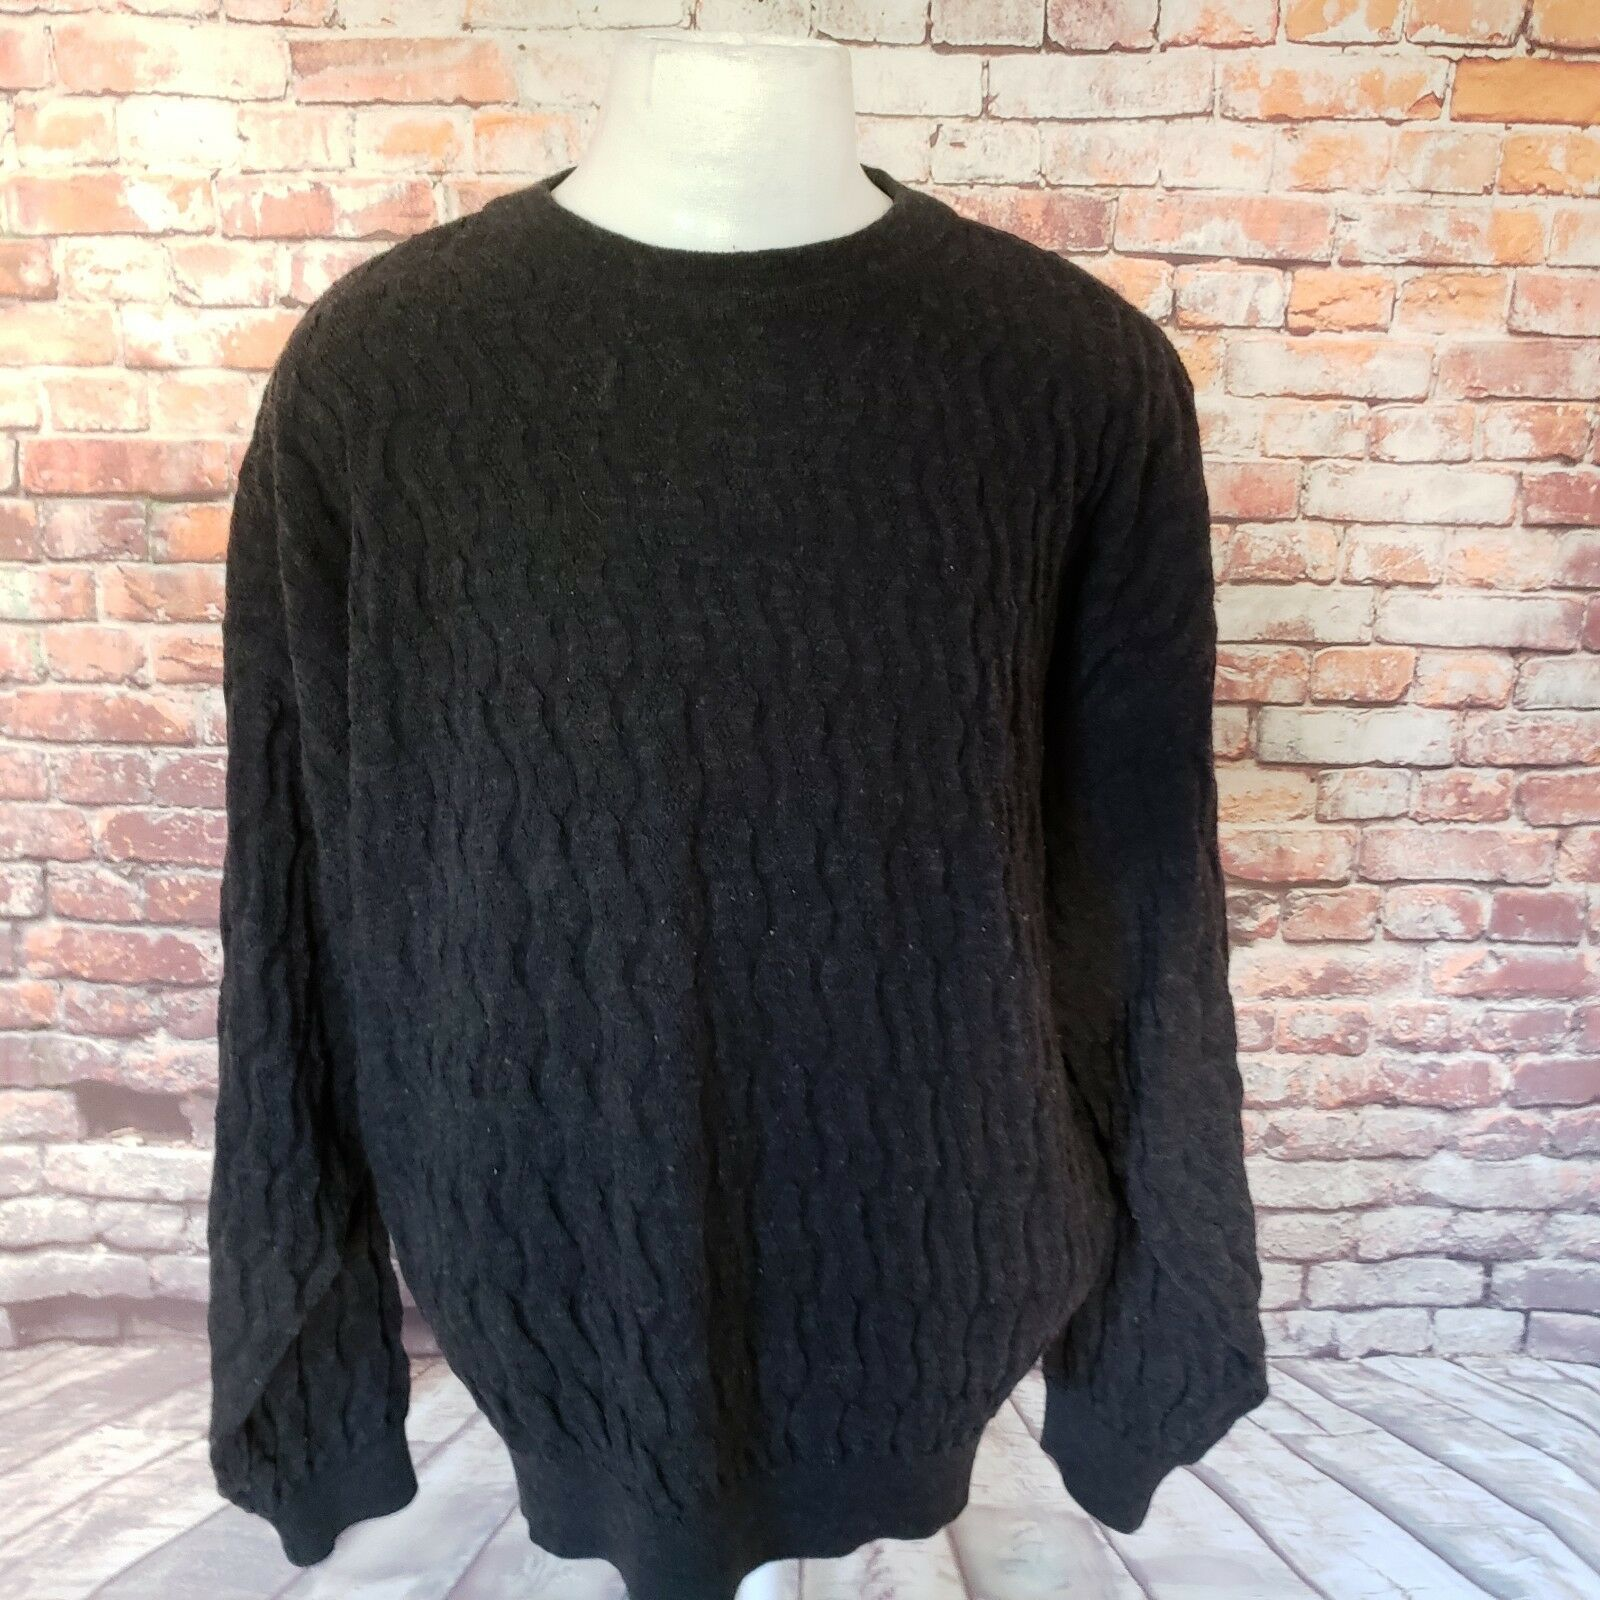 JHANE BARNES MEN'S WOOL BLEND CABLE KNIT SWEATER SIZE L A70-14